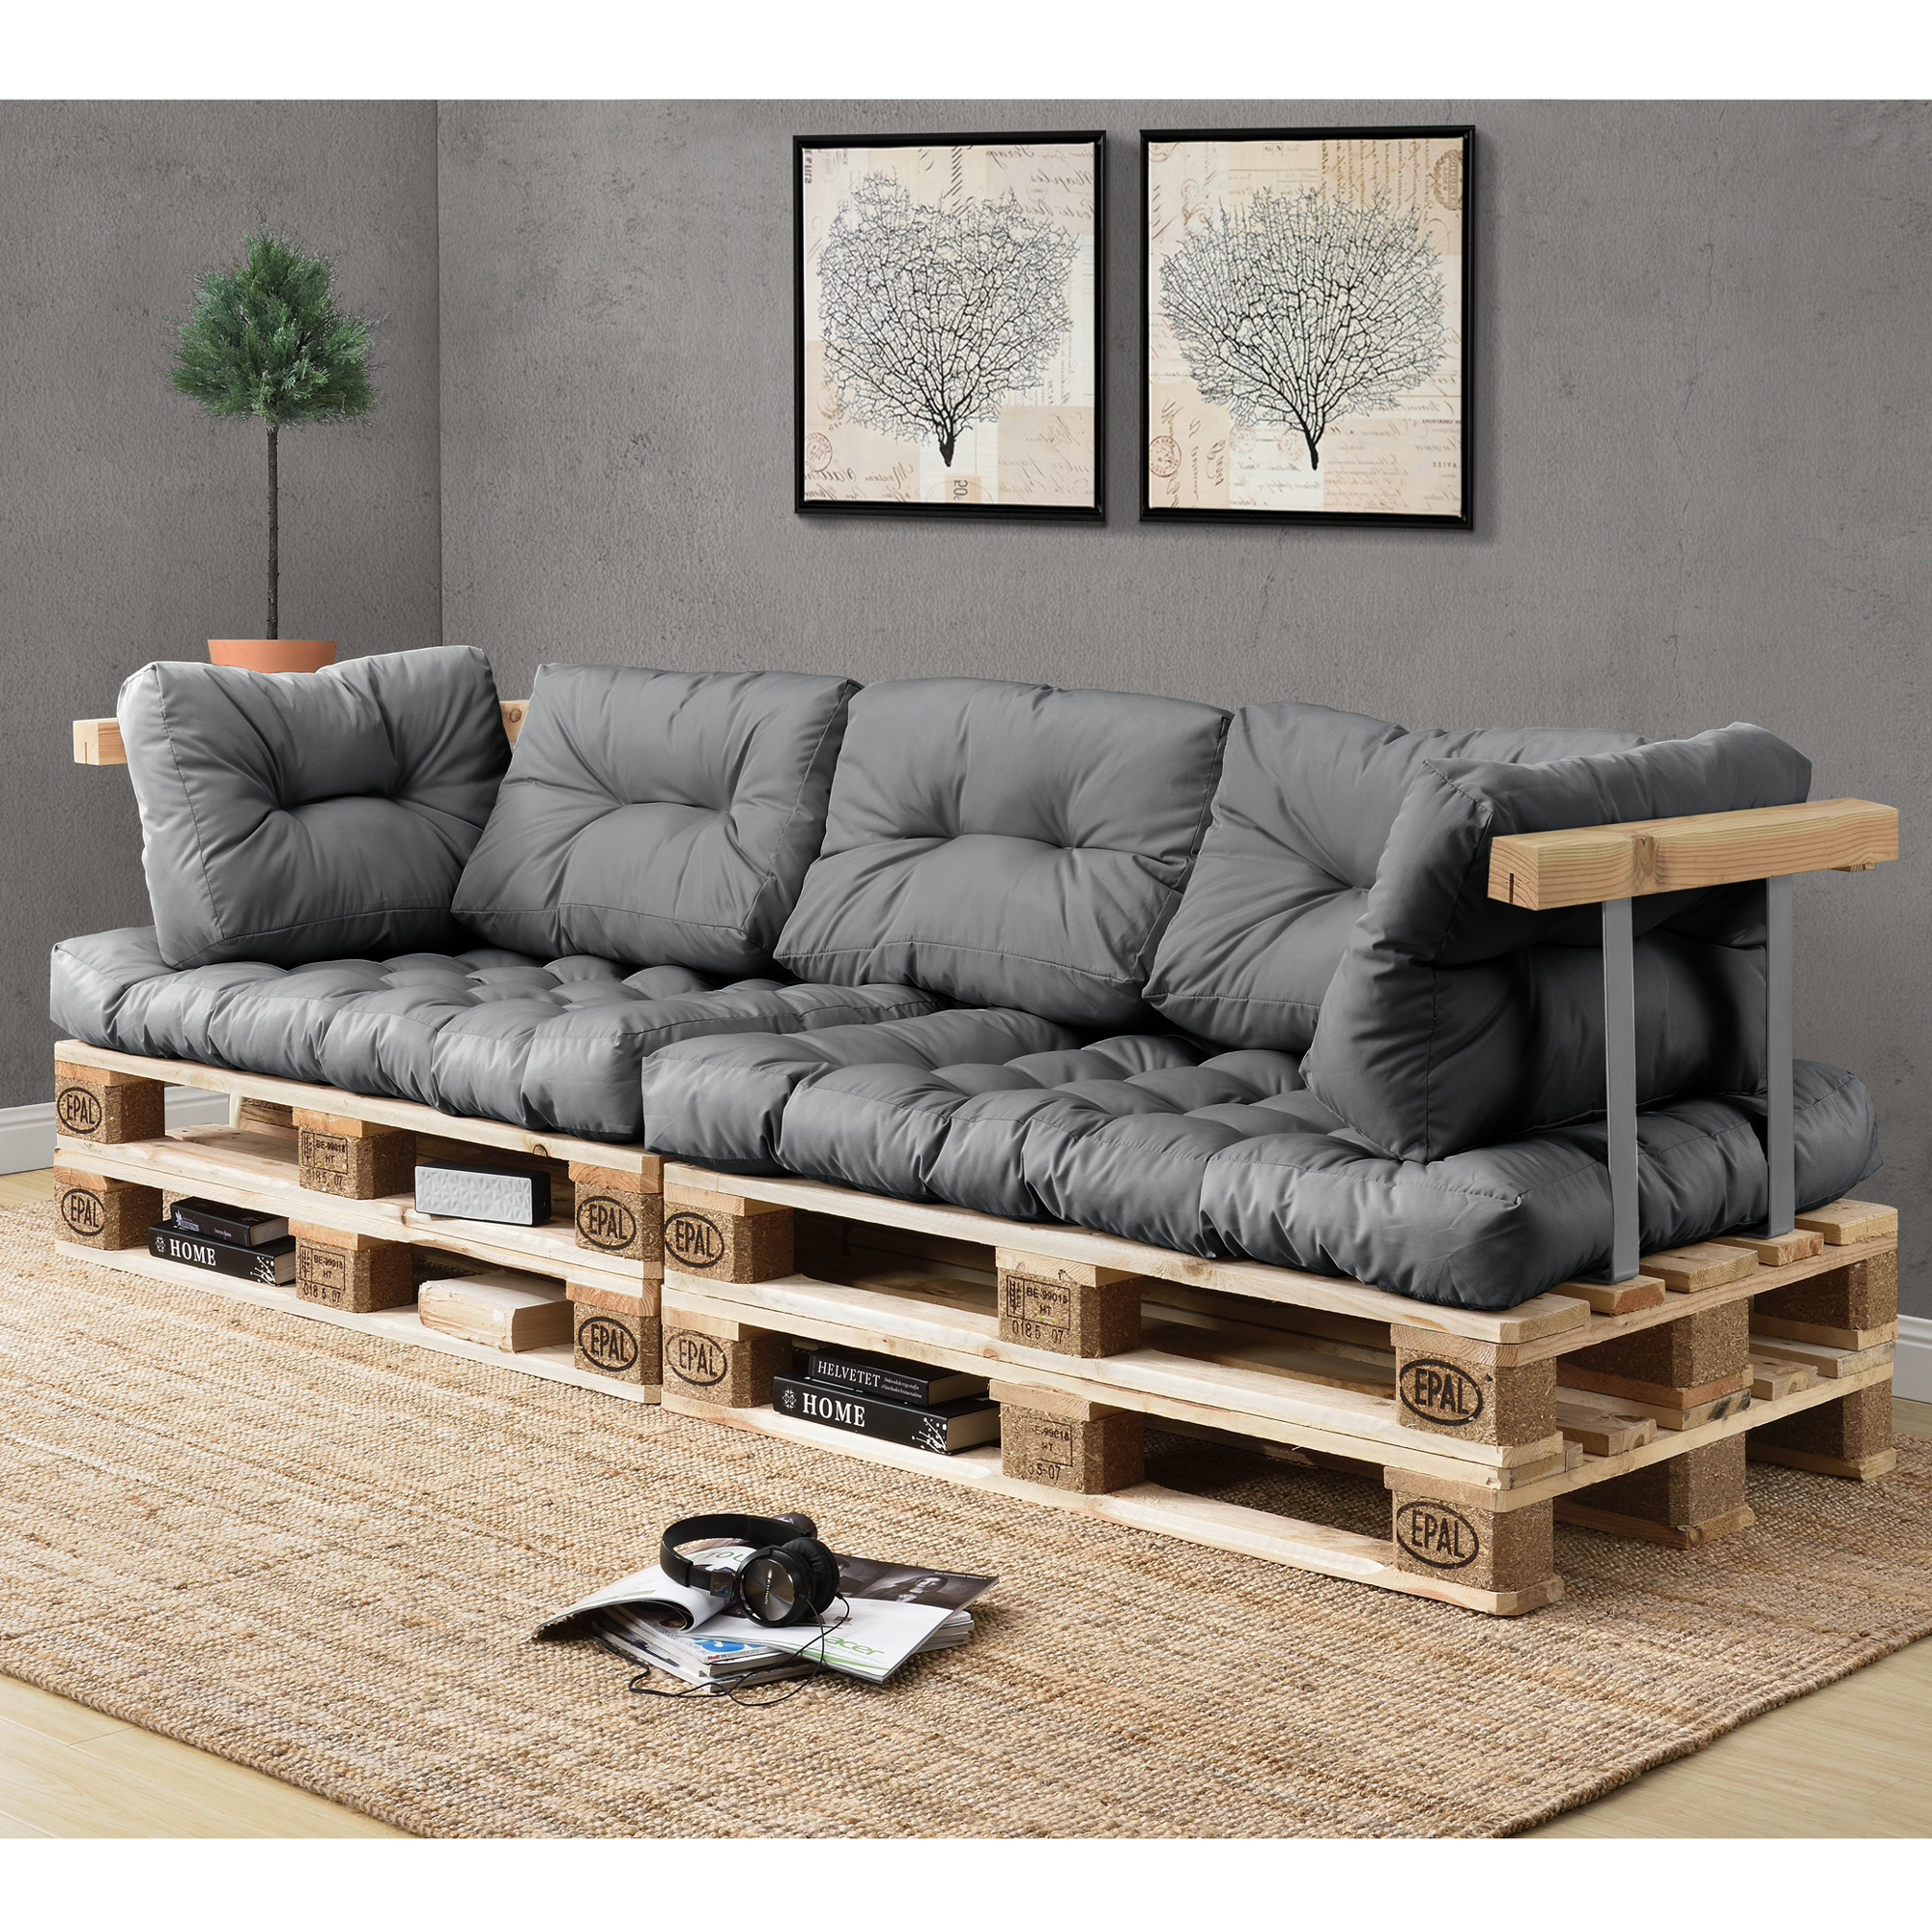 euro paletten sofa 7x sitz r ckenkissen hell grau kissen auflage ebay. Black Bedroom Furniture Sets. Home Design Ideas